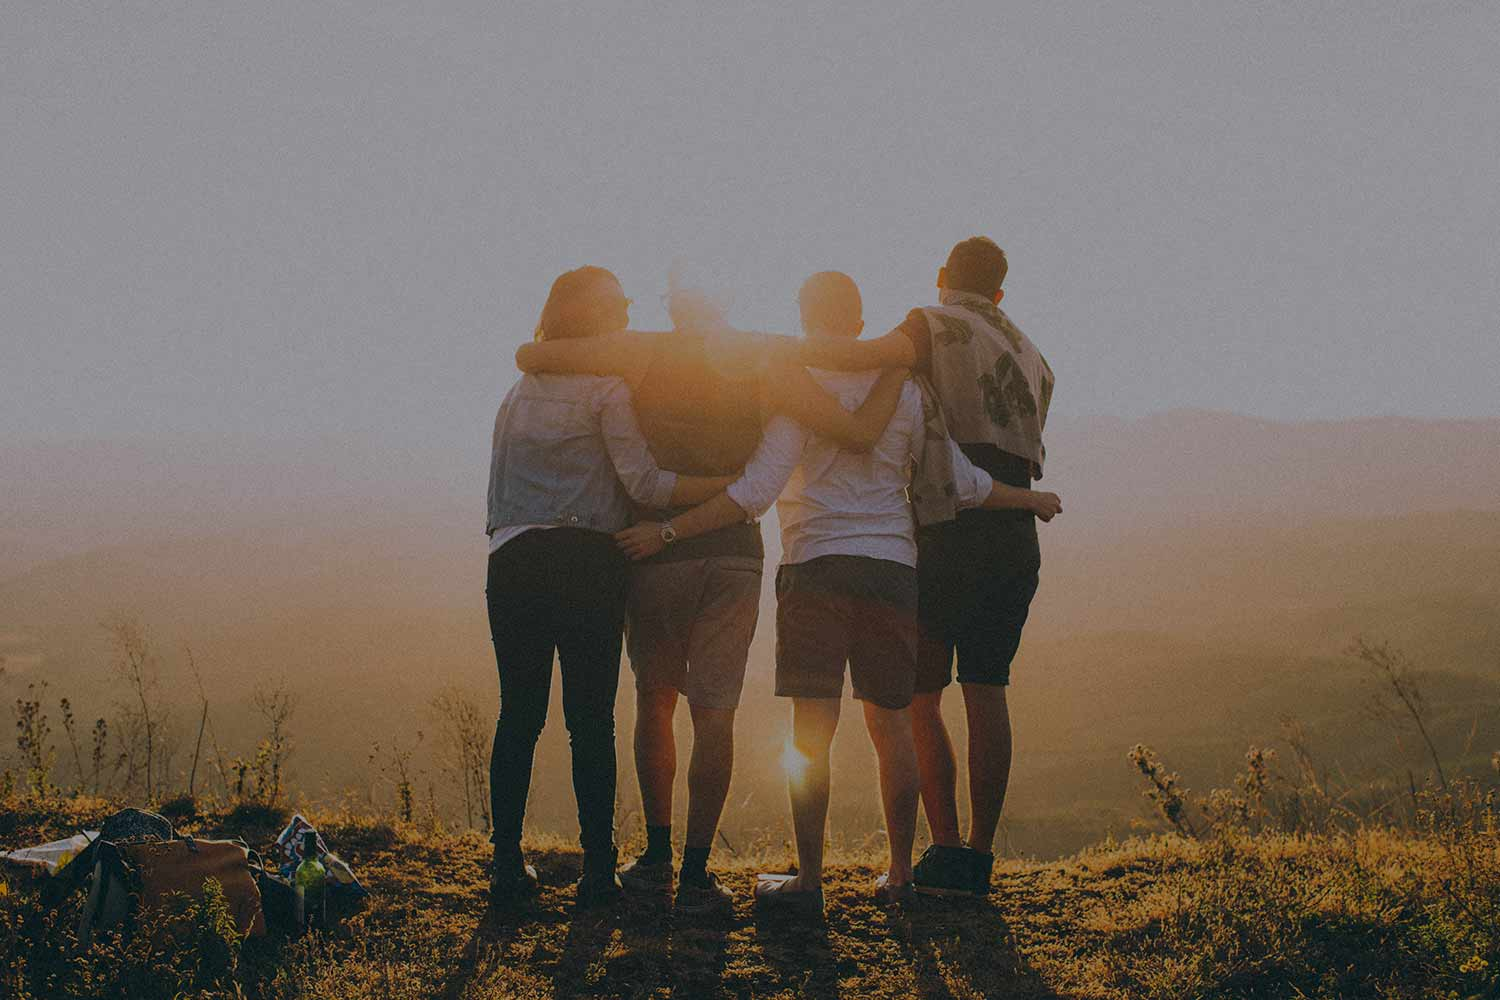 4-friends-arm-in-arm-by-the-sunset.jpg